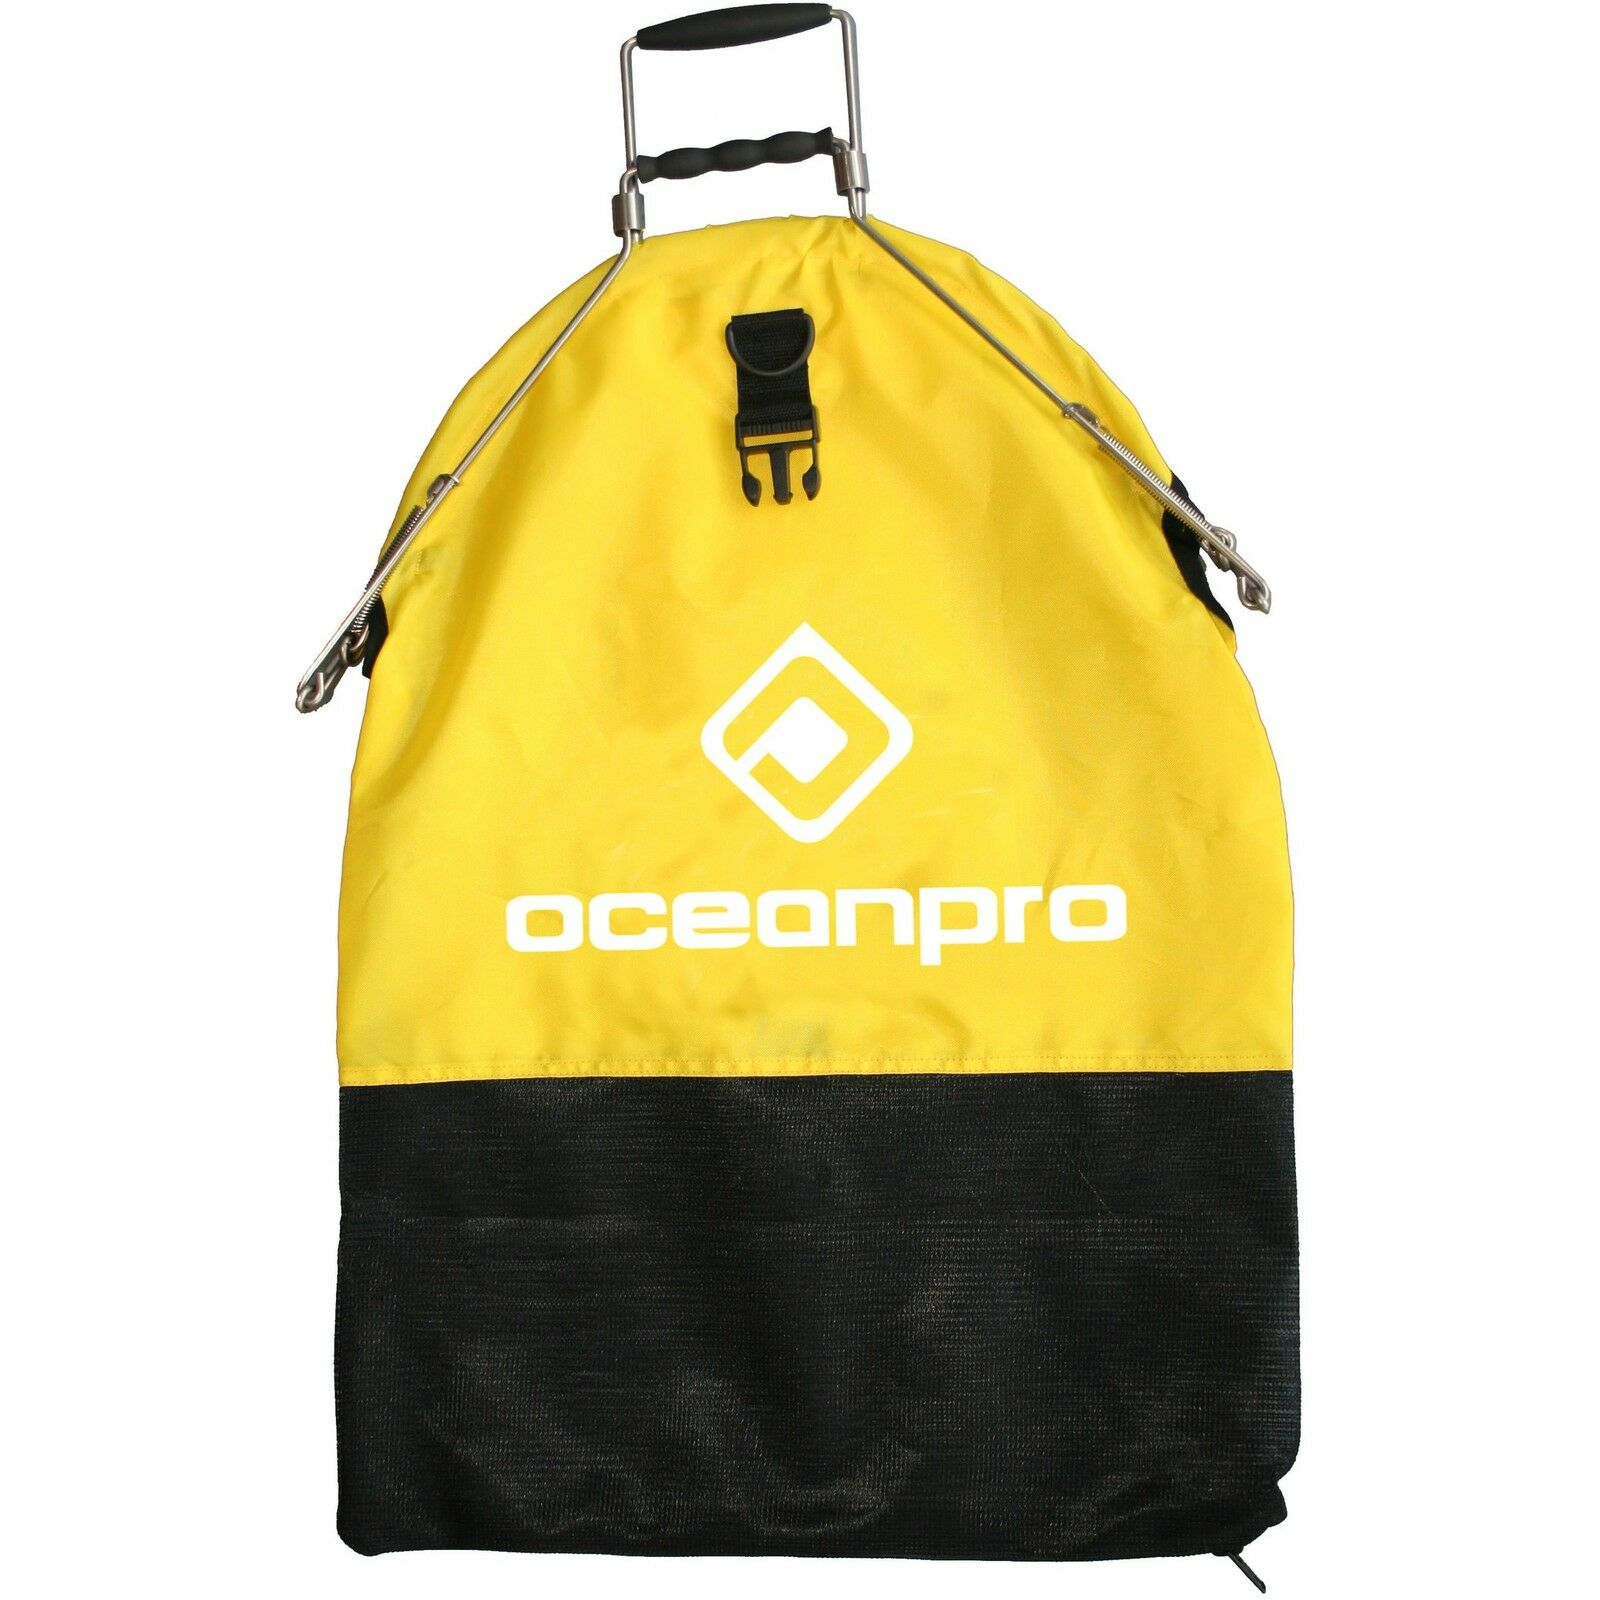 Ocean Pro Catch Bag - Spring Loaded (Yellow)